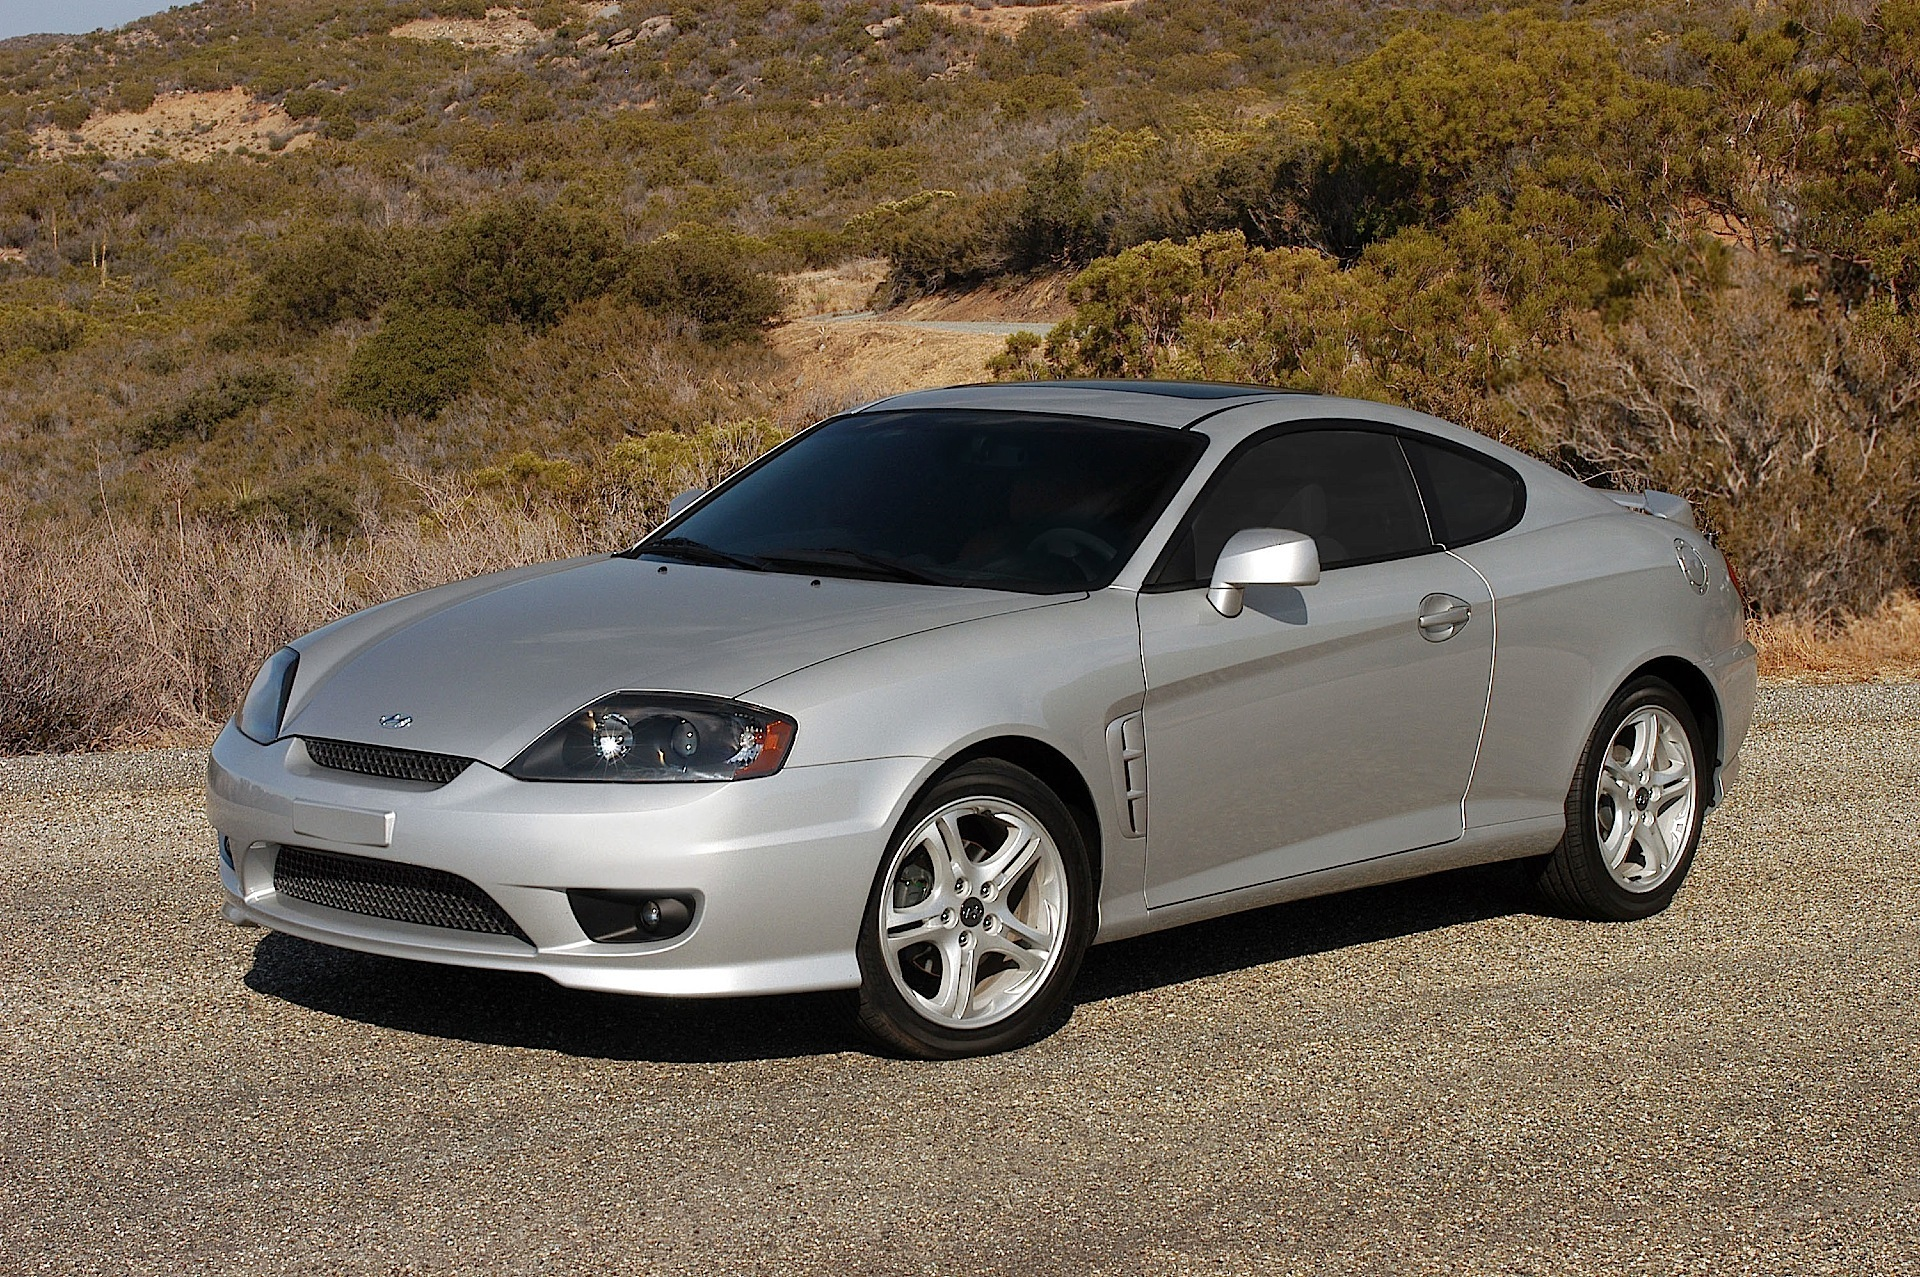 hyundai coupe tiburon 2004 2005 2006 2007 autoevolution. Black Bedroom Furniture Sets. Home Design Ideas